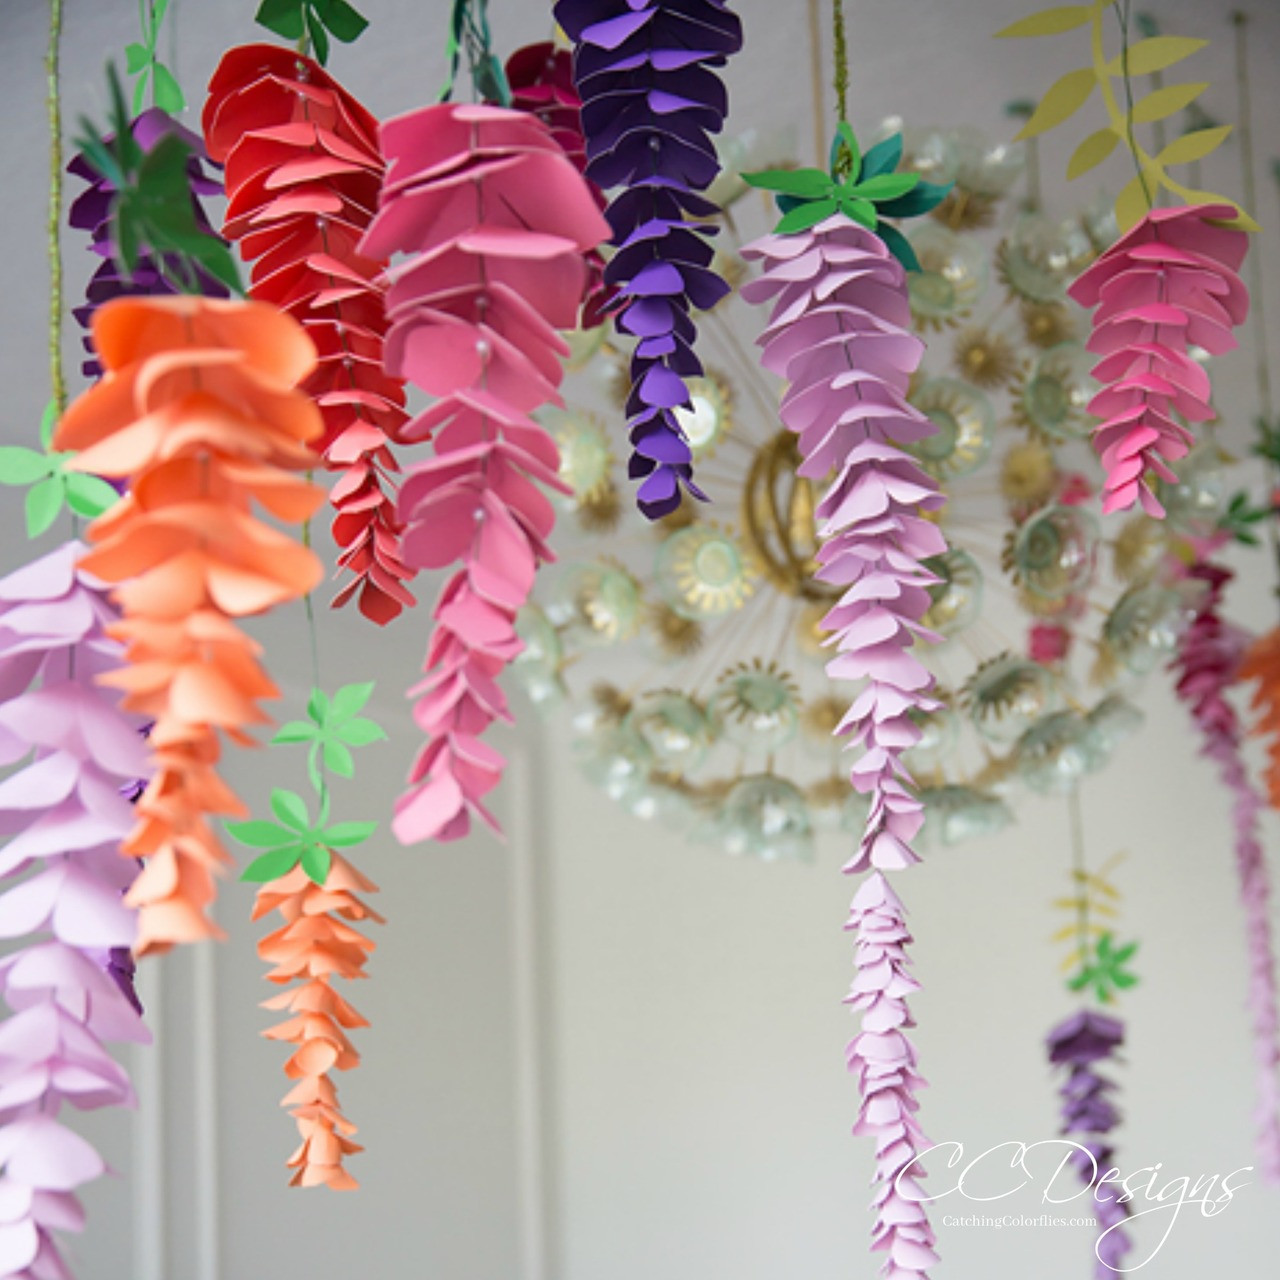 Hanging Paper Wisteria Flower Templates Catching Colorflies